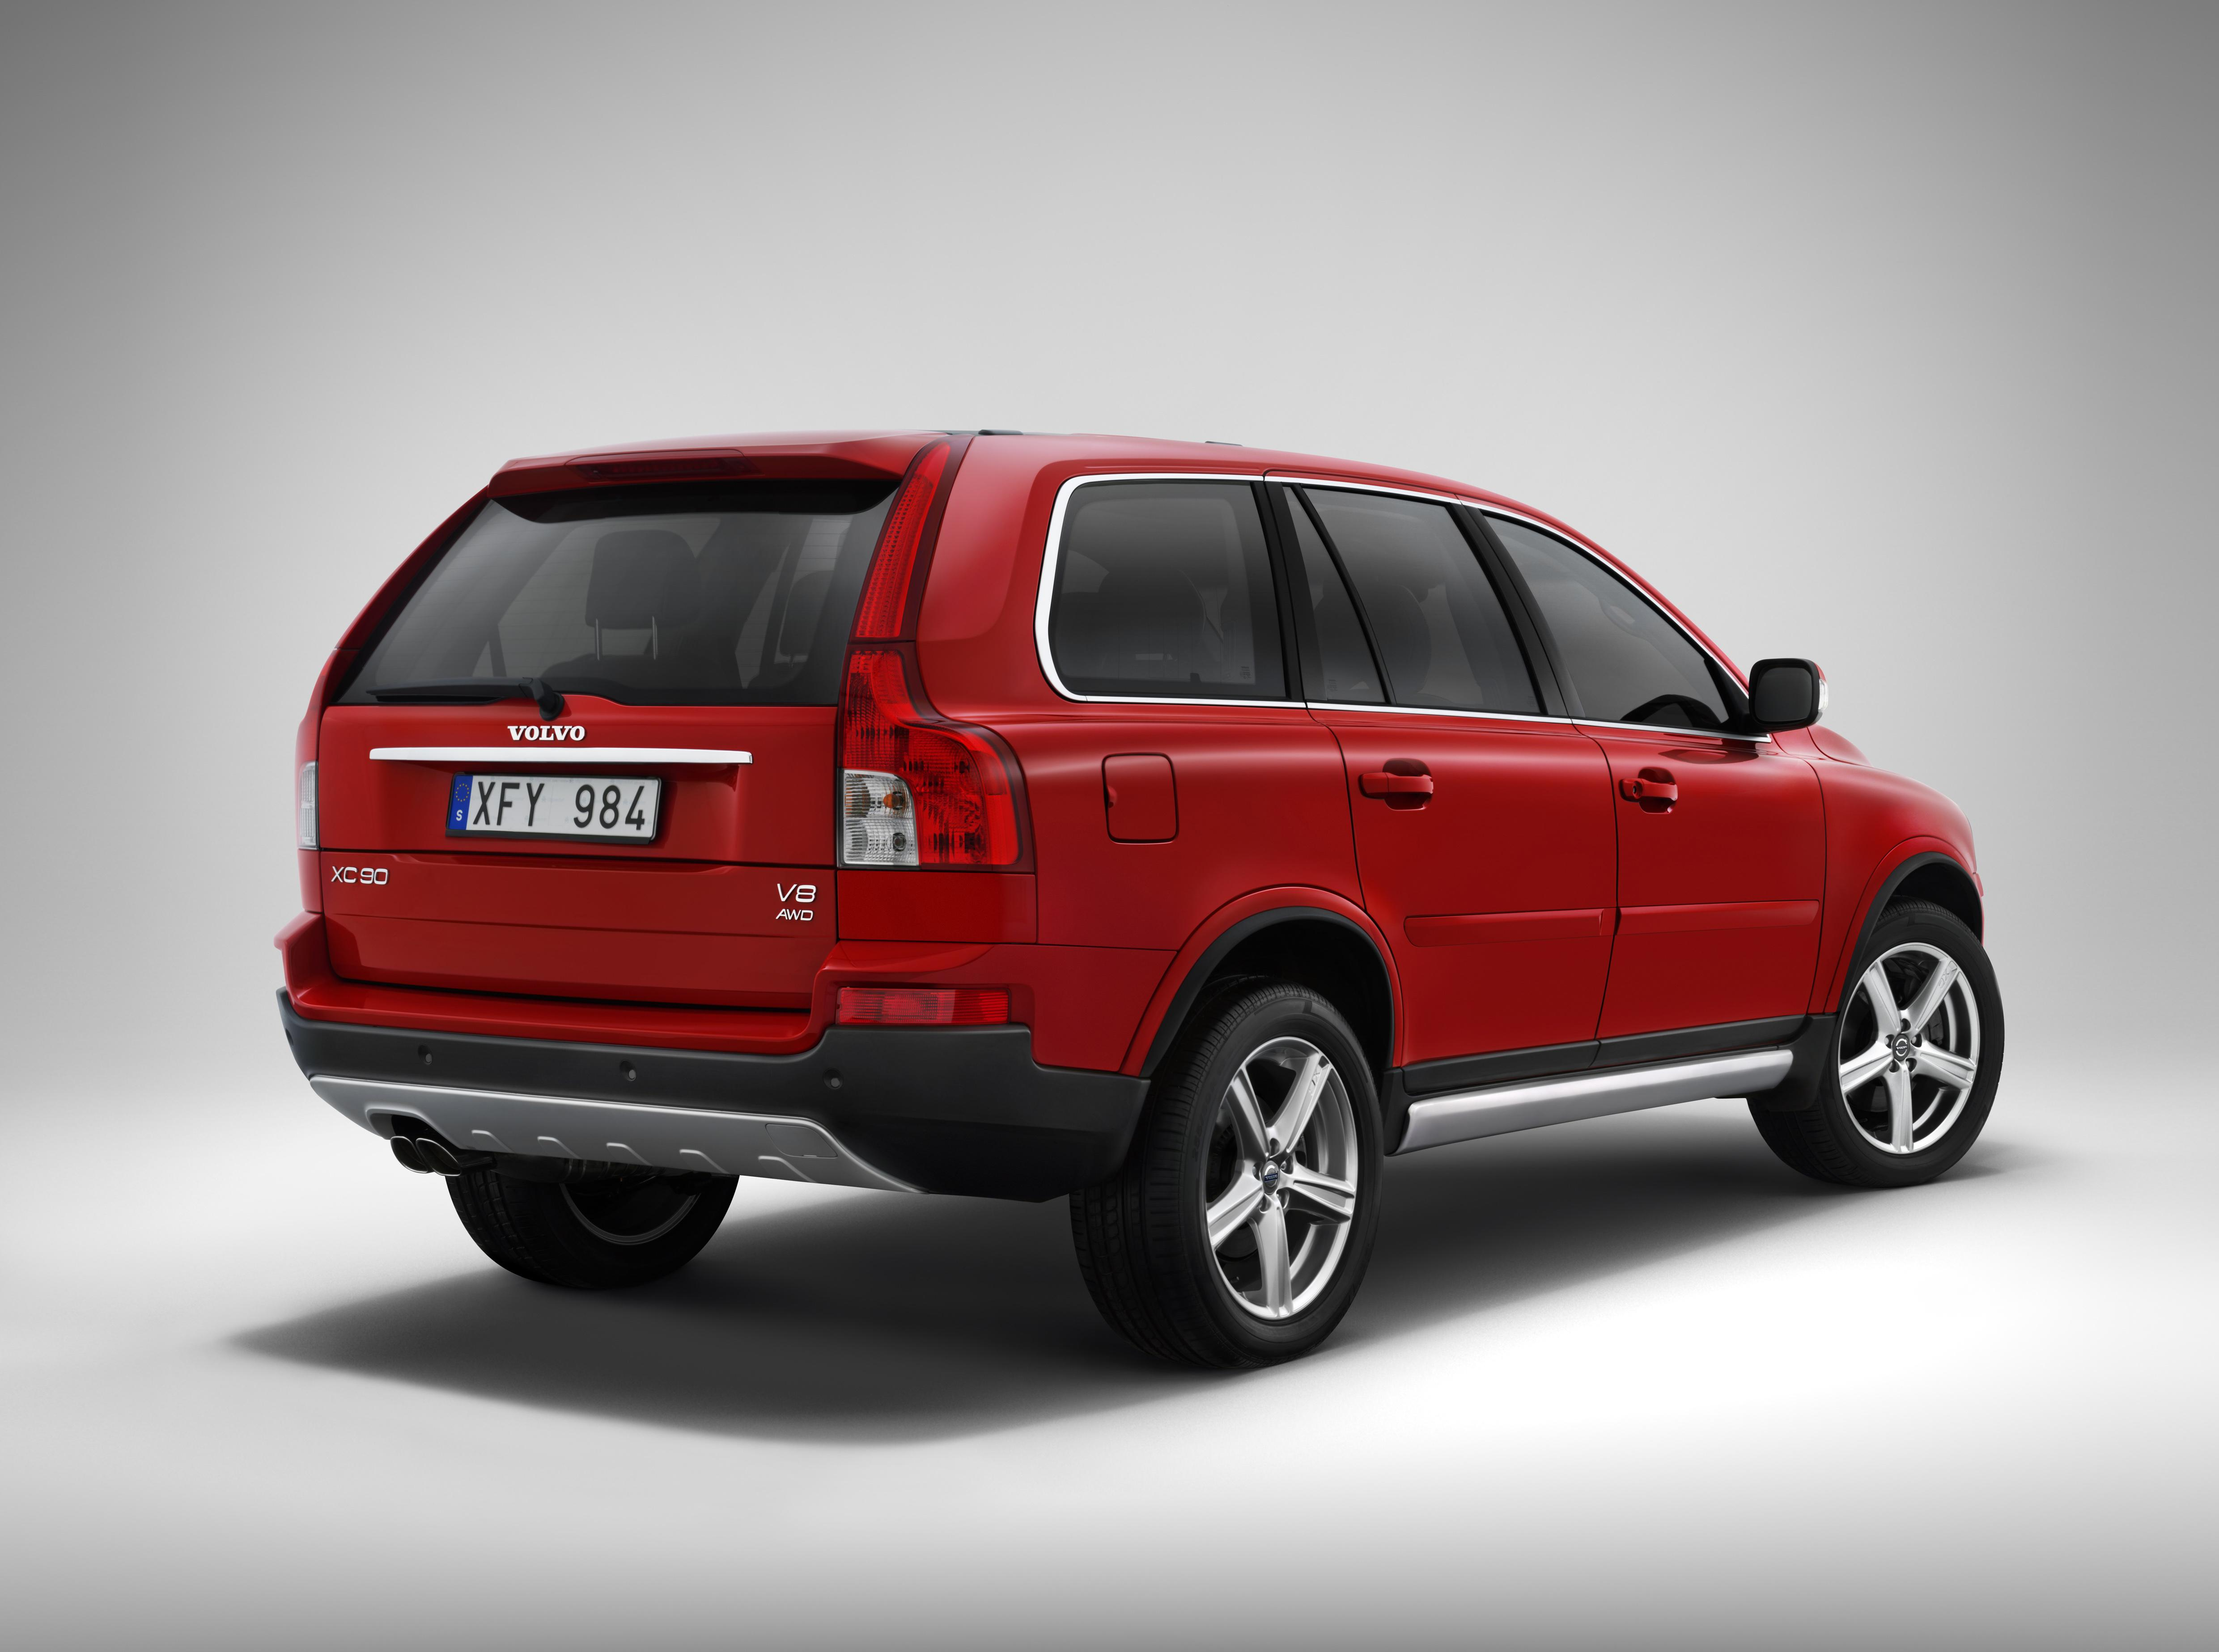 2007 volvo xc90 v8 sport review top speed. Black Bedroom Furniture Sets. Home Design Ideas